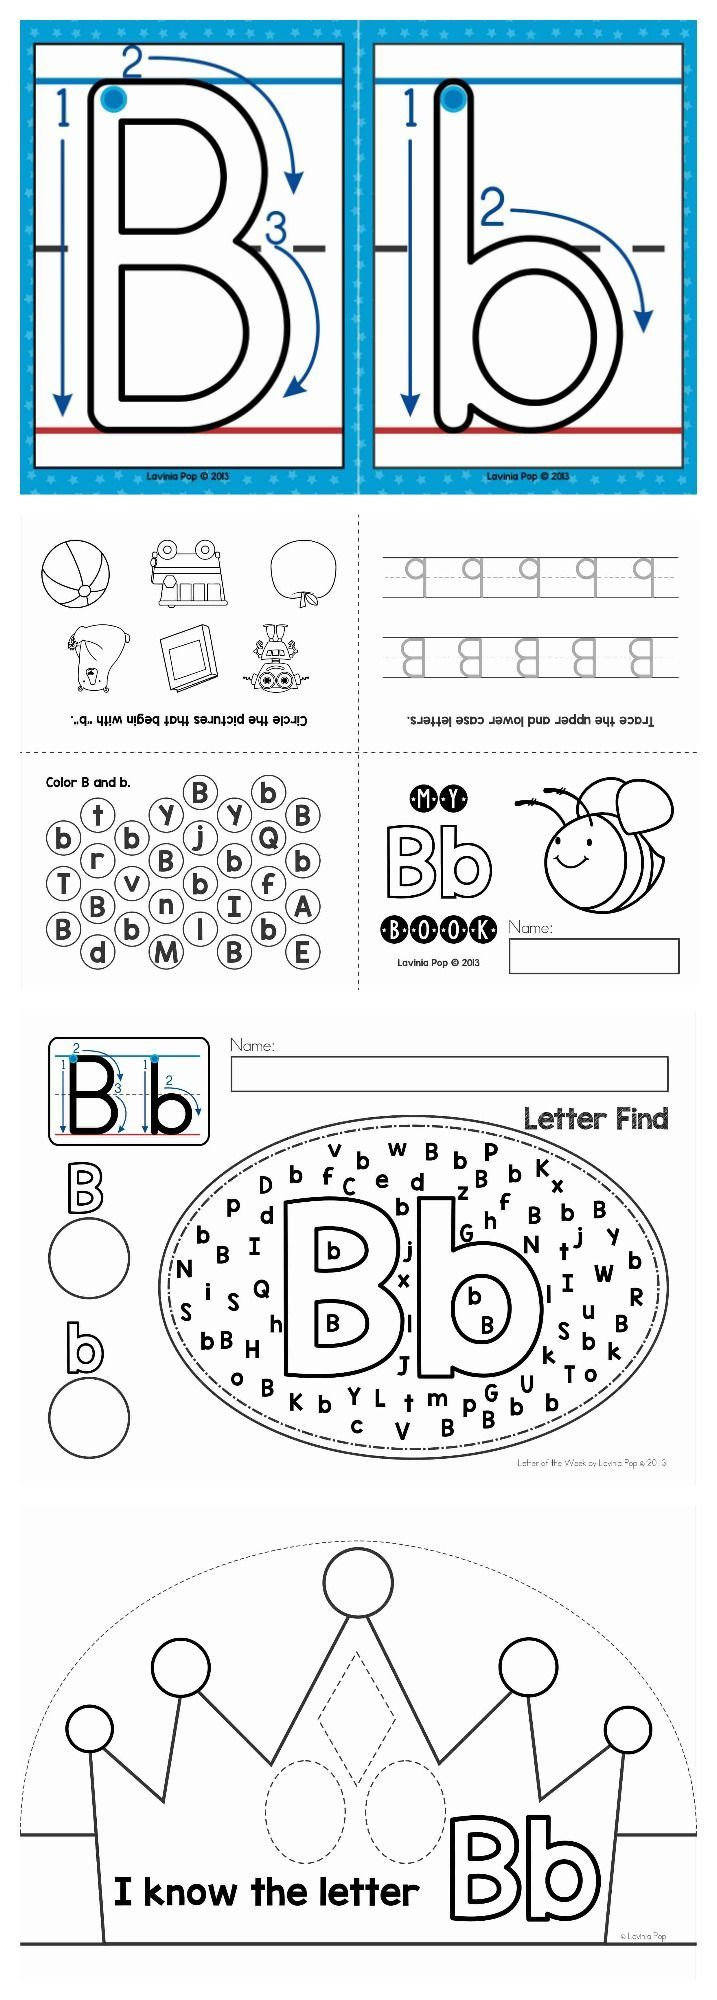 Workbooks letter n worksheets for preschoolers : The 25+ best Letter o worksheets ideas on Pinterest | Letter l ...